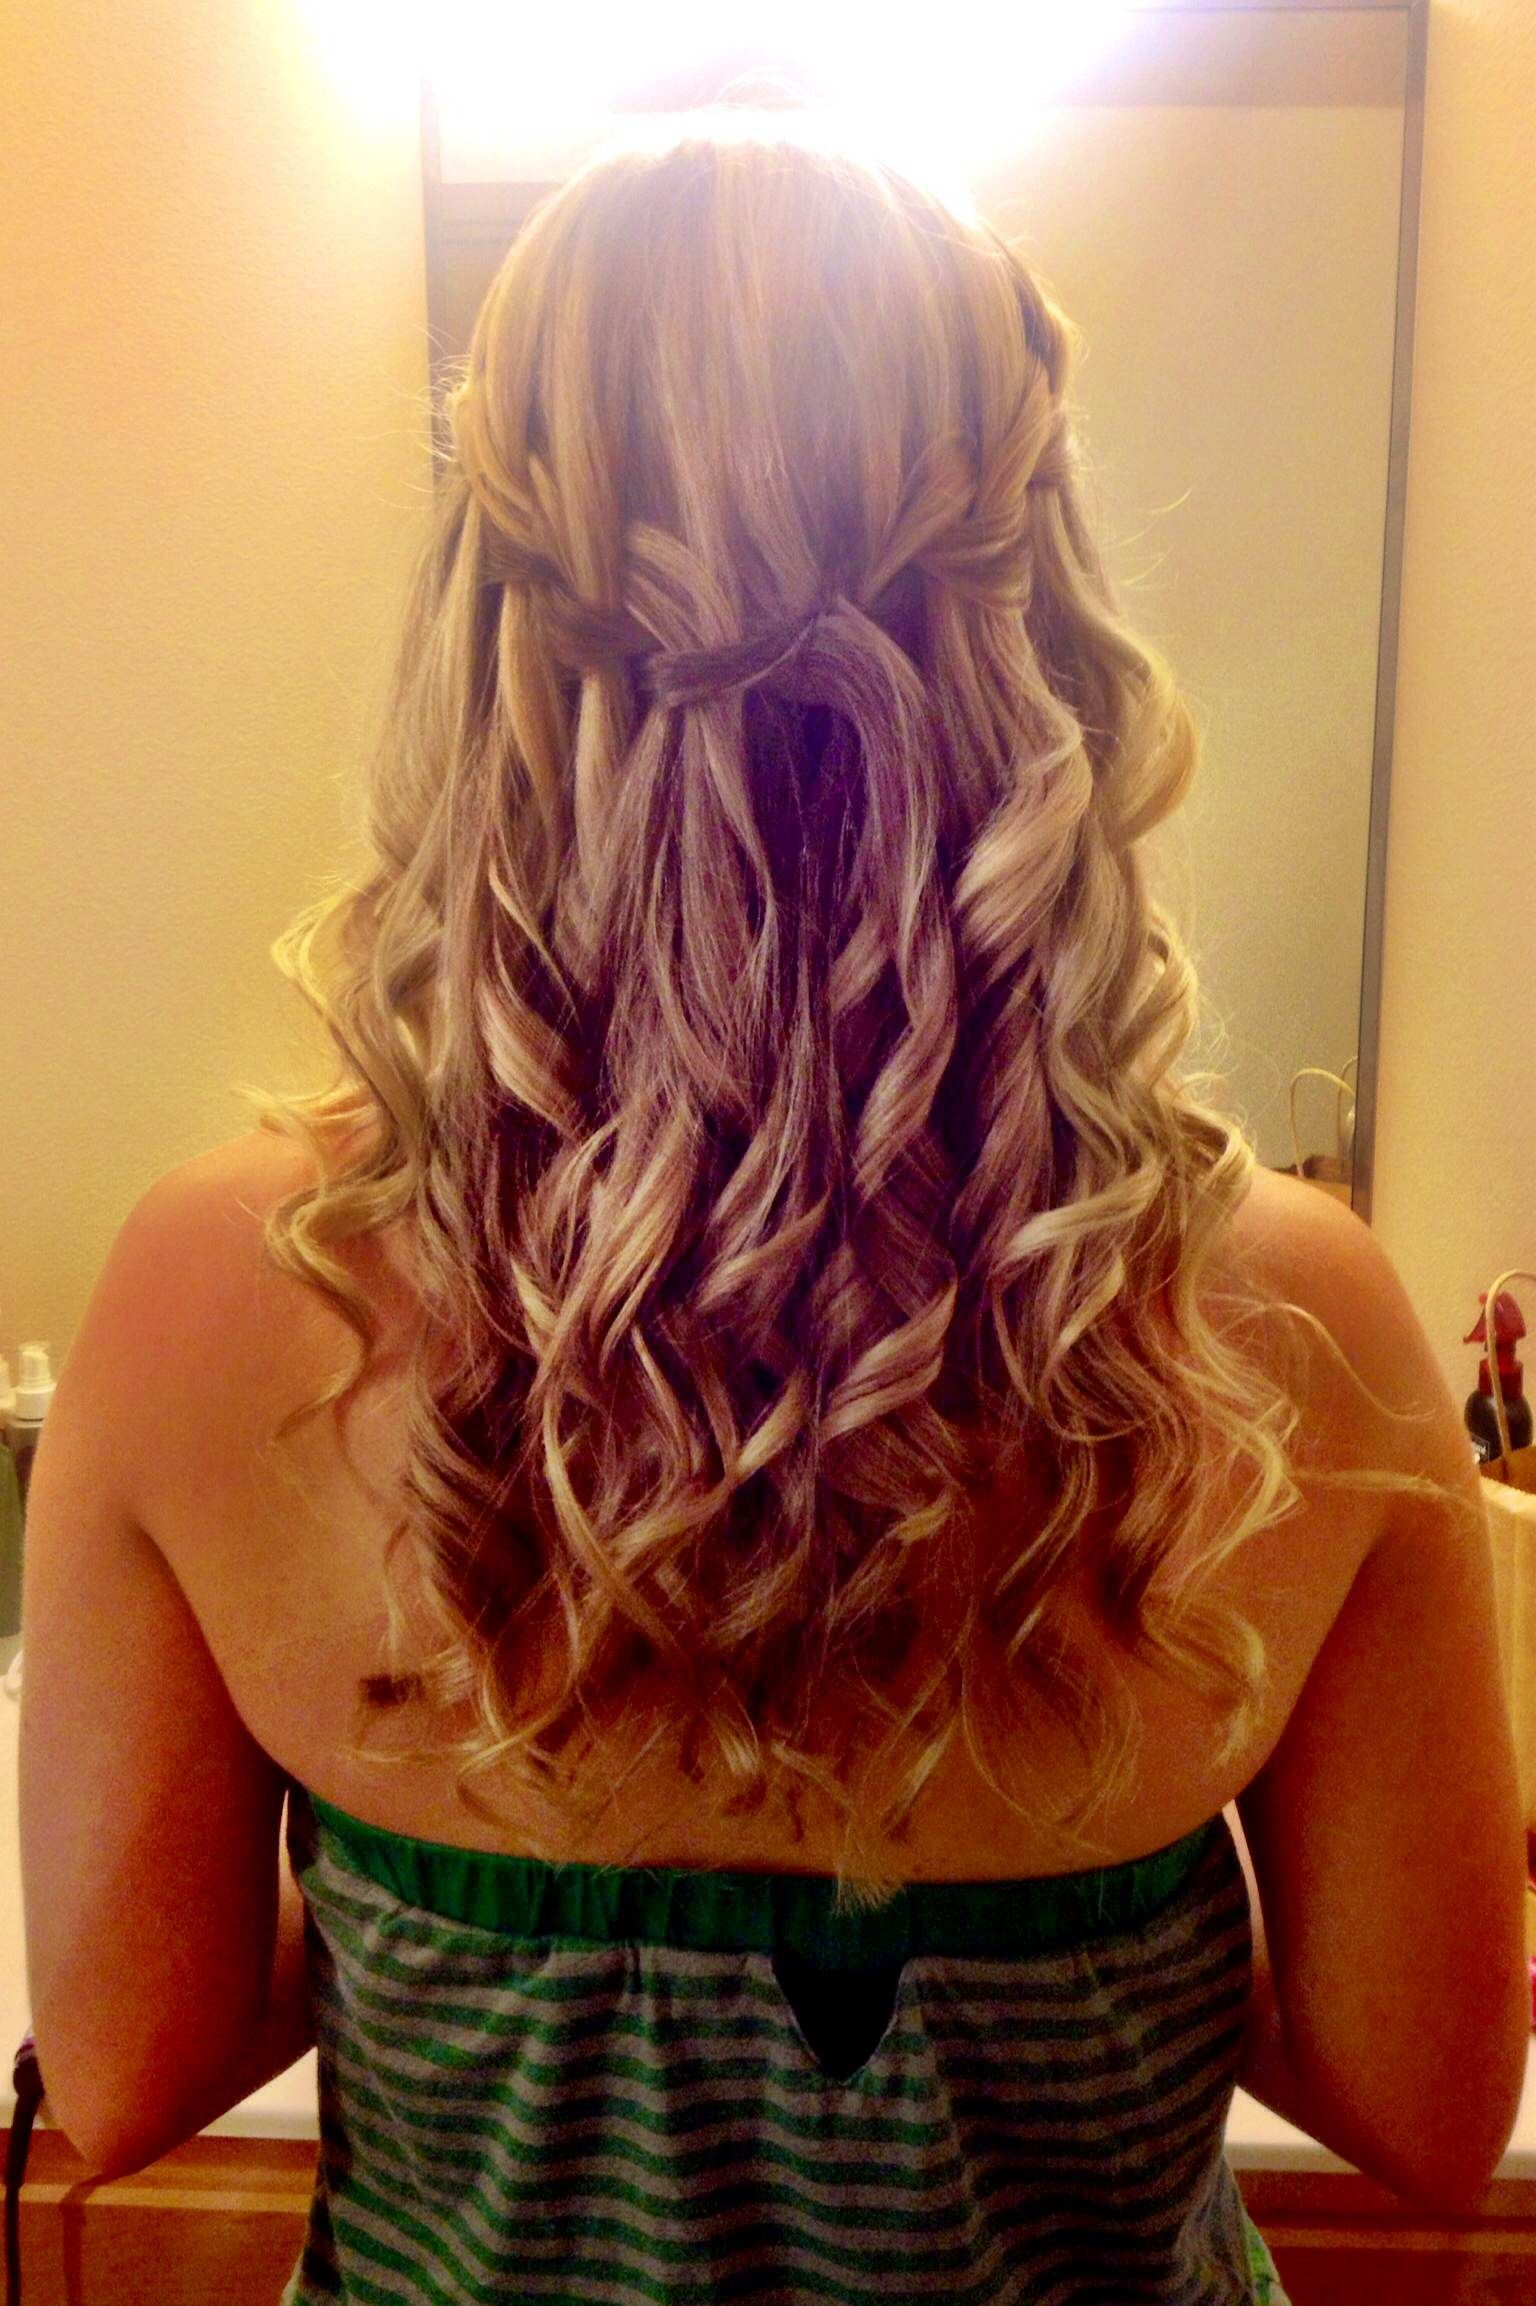 Today S Hairstyle Loose Curls And A Waterfall Braid Loose Curls Hair Styles Hairstyle